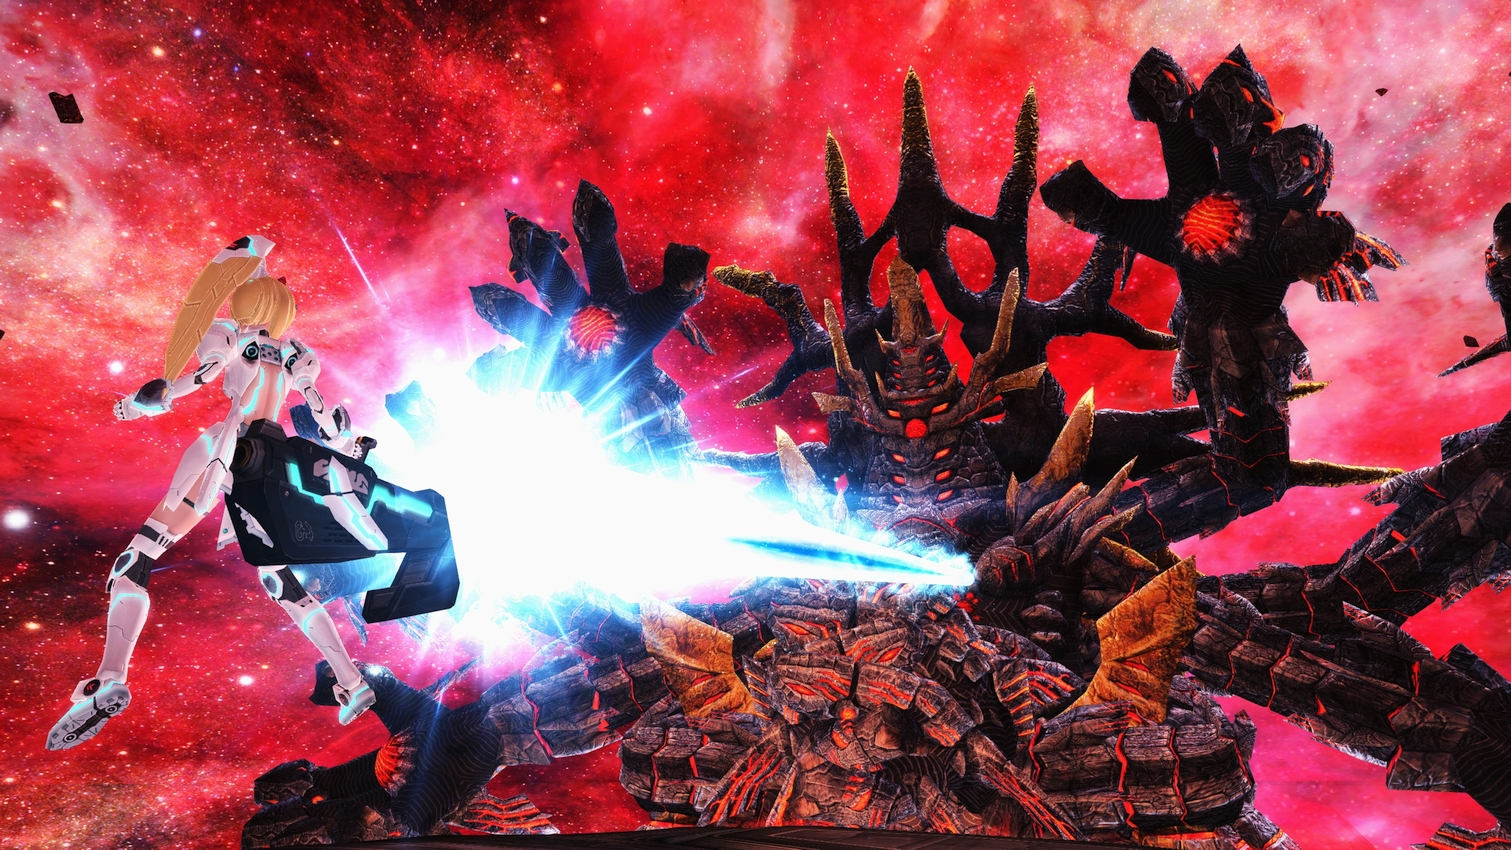 Phantasy Star Online 2 Closed Beta Gives Sneak Peek Into Final Release Of Game Outside Japan